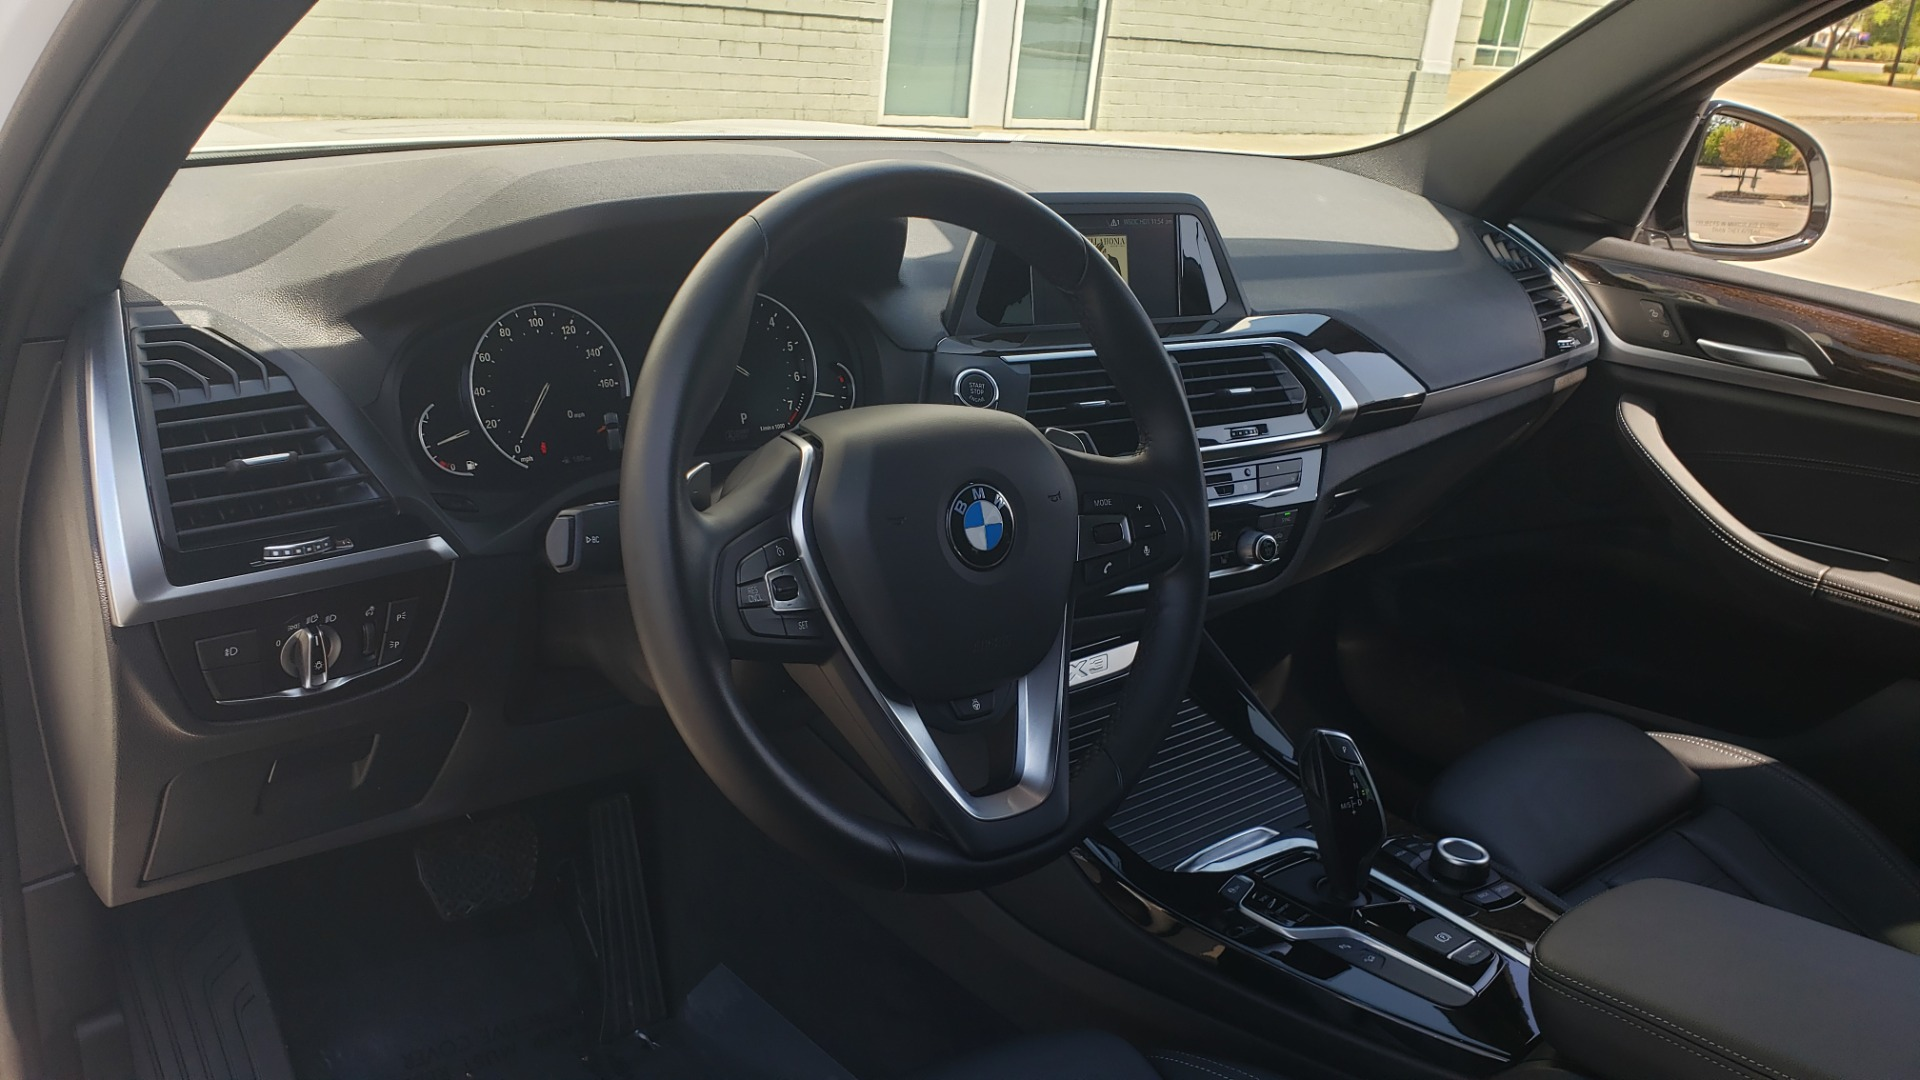 Used 2018 BMW X3 XDRIVE30I / CONV PKG / PANO-ROOF / HTD STS / REARVIEW for sale $33,995 at Formula Imports in Charlotte NC 28227 40